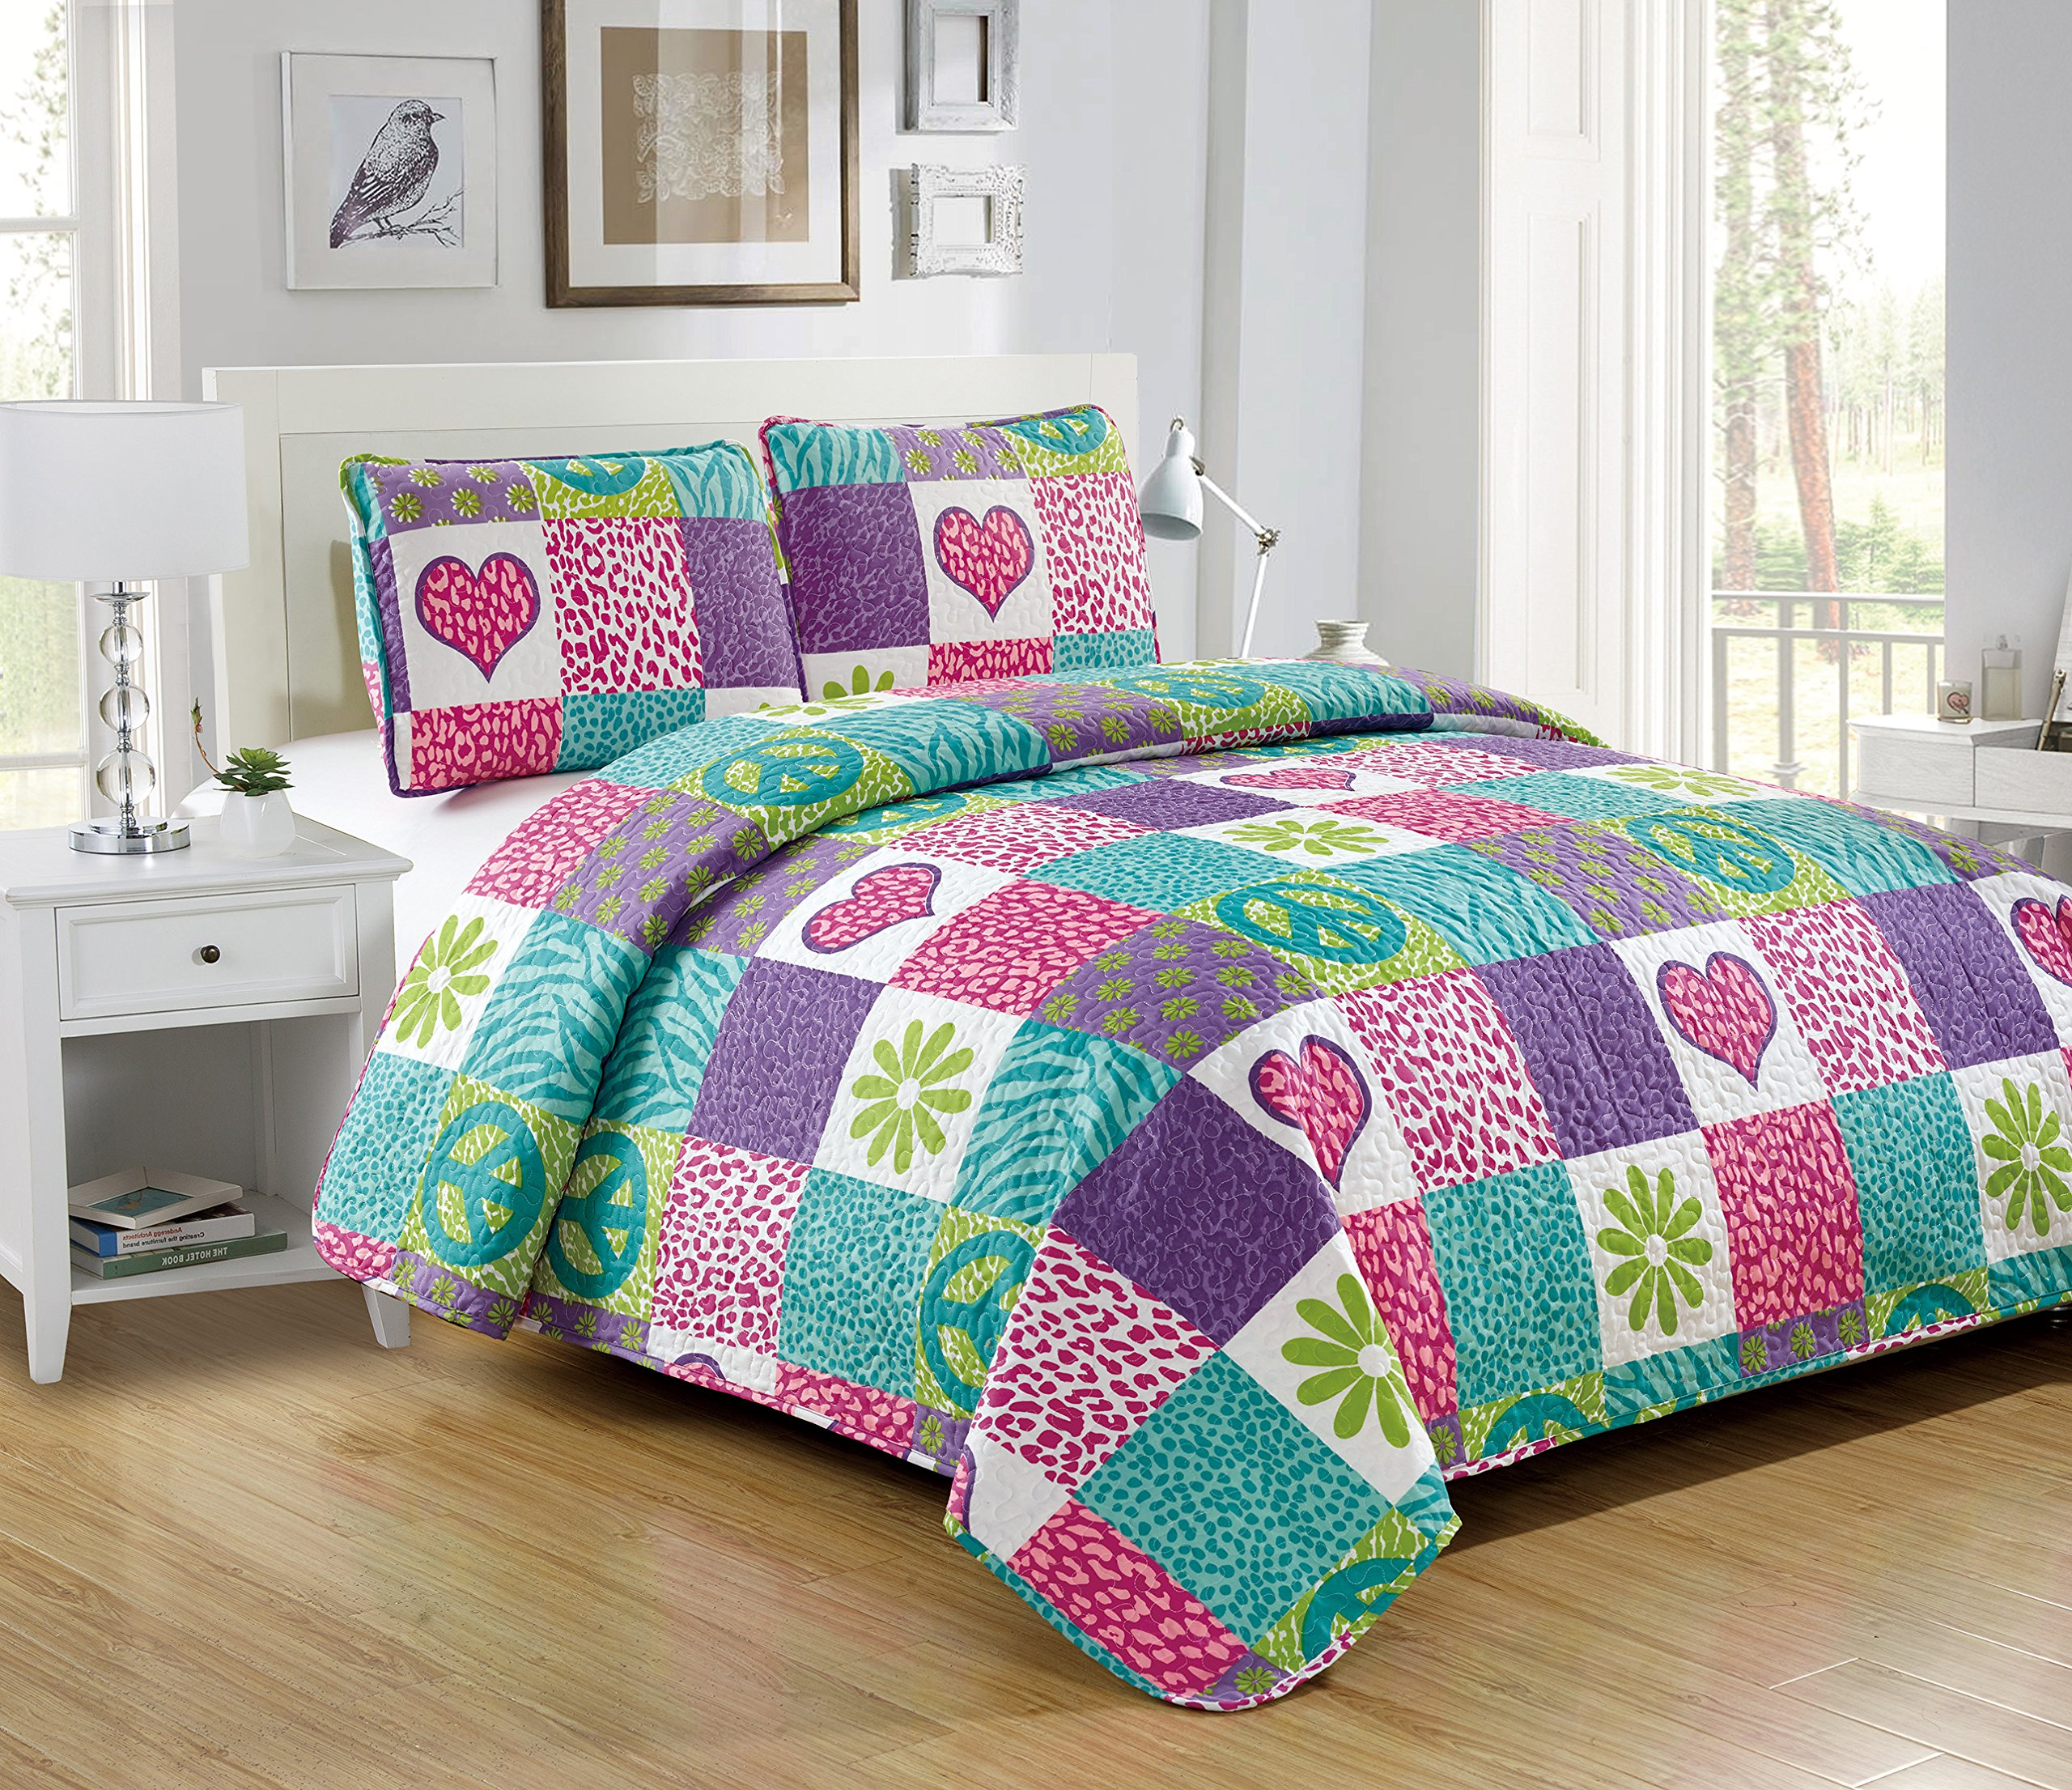 Fancy Collection 3pc Full Size Bedspread Set Teens/Girls safari pink purple peace sign new# zebra Flower